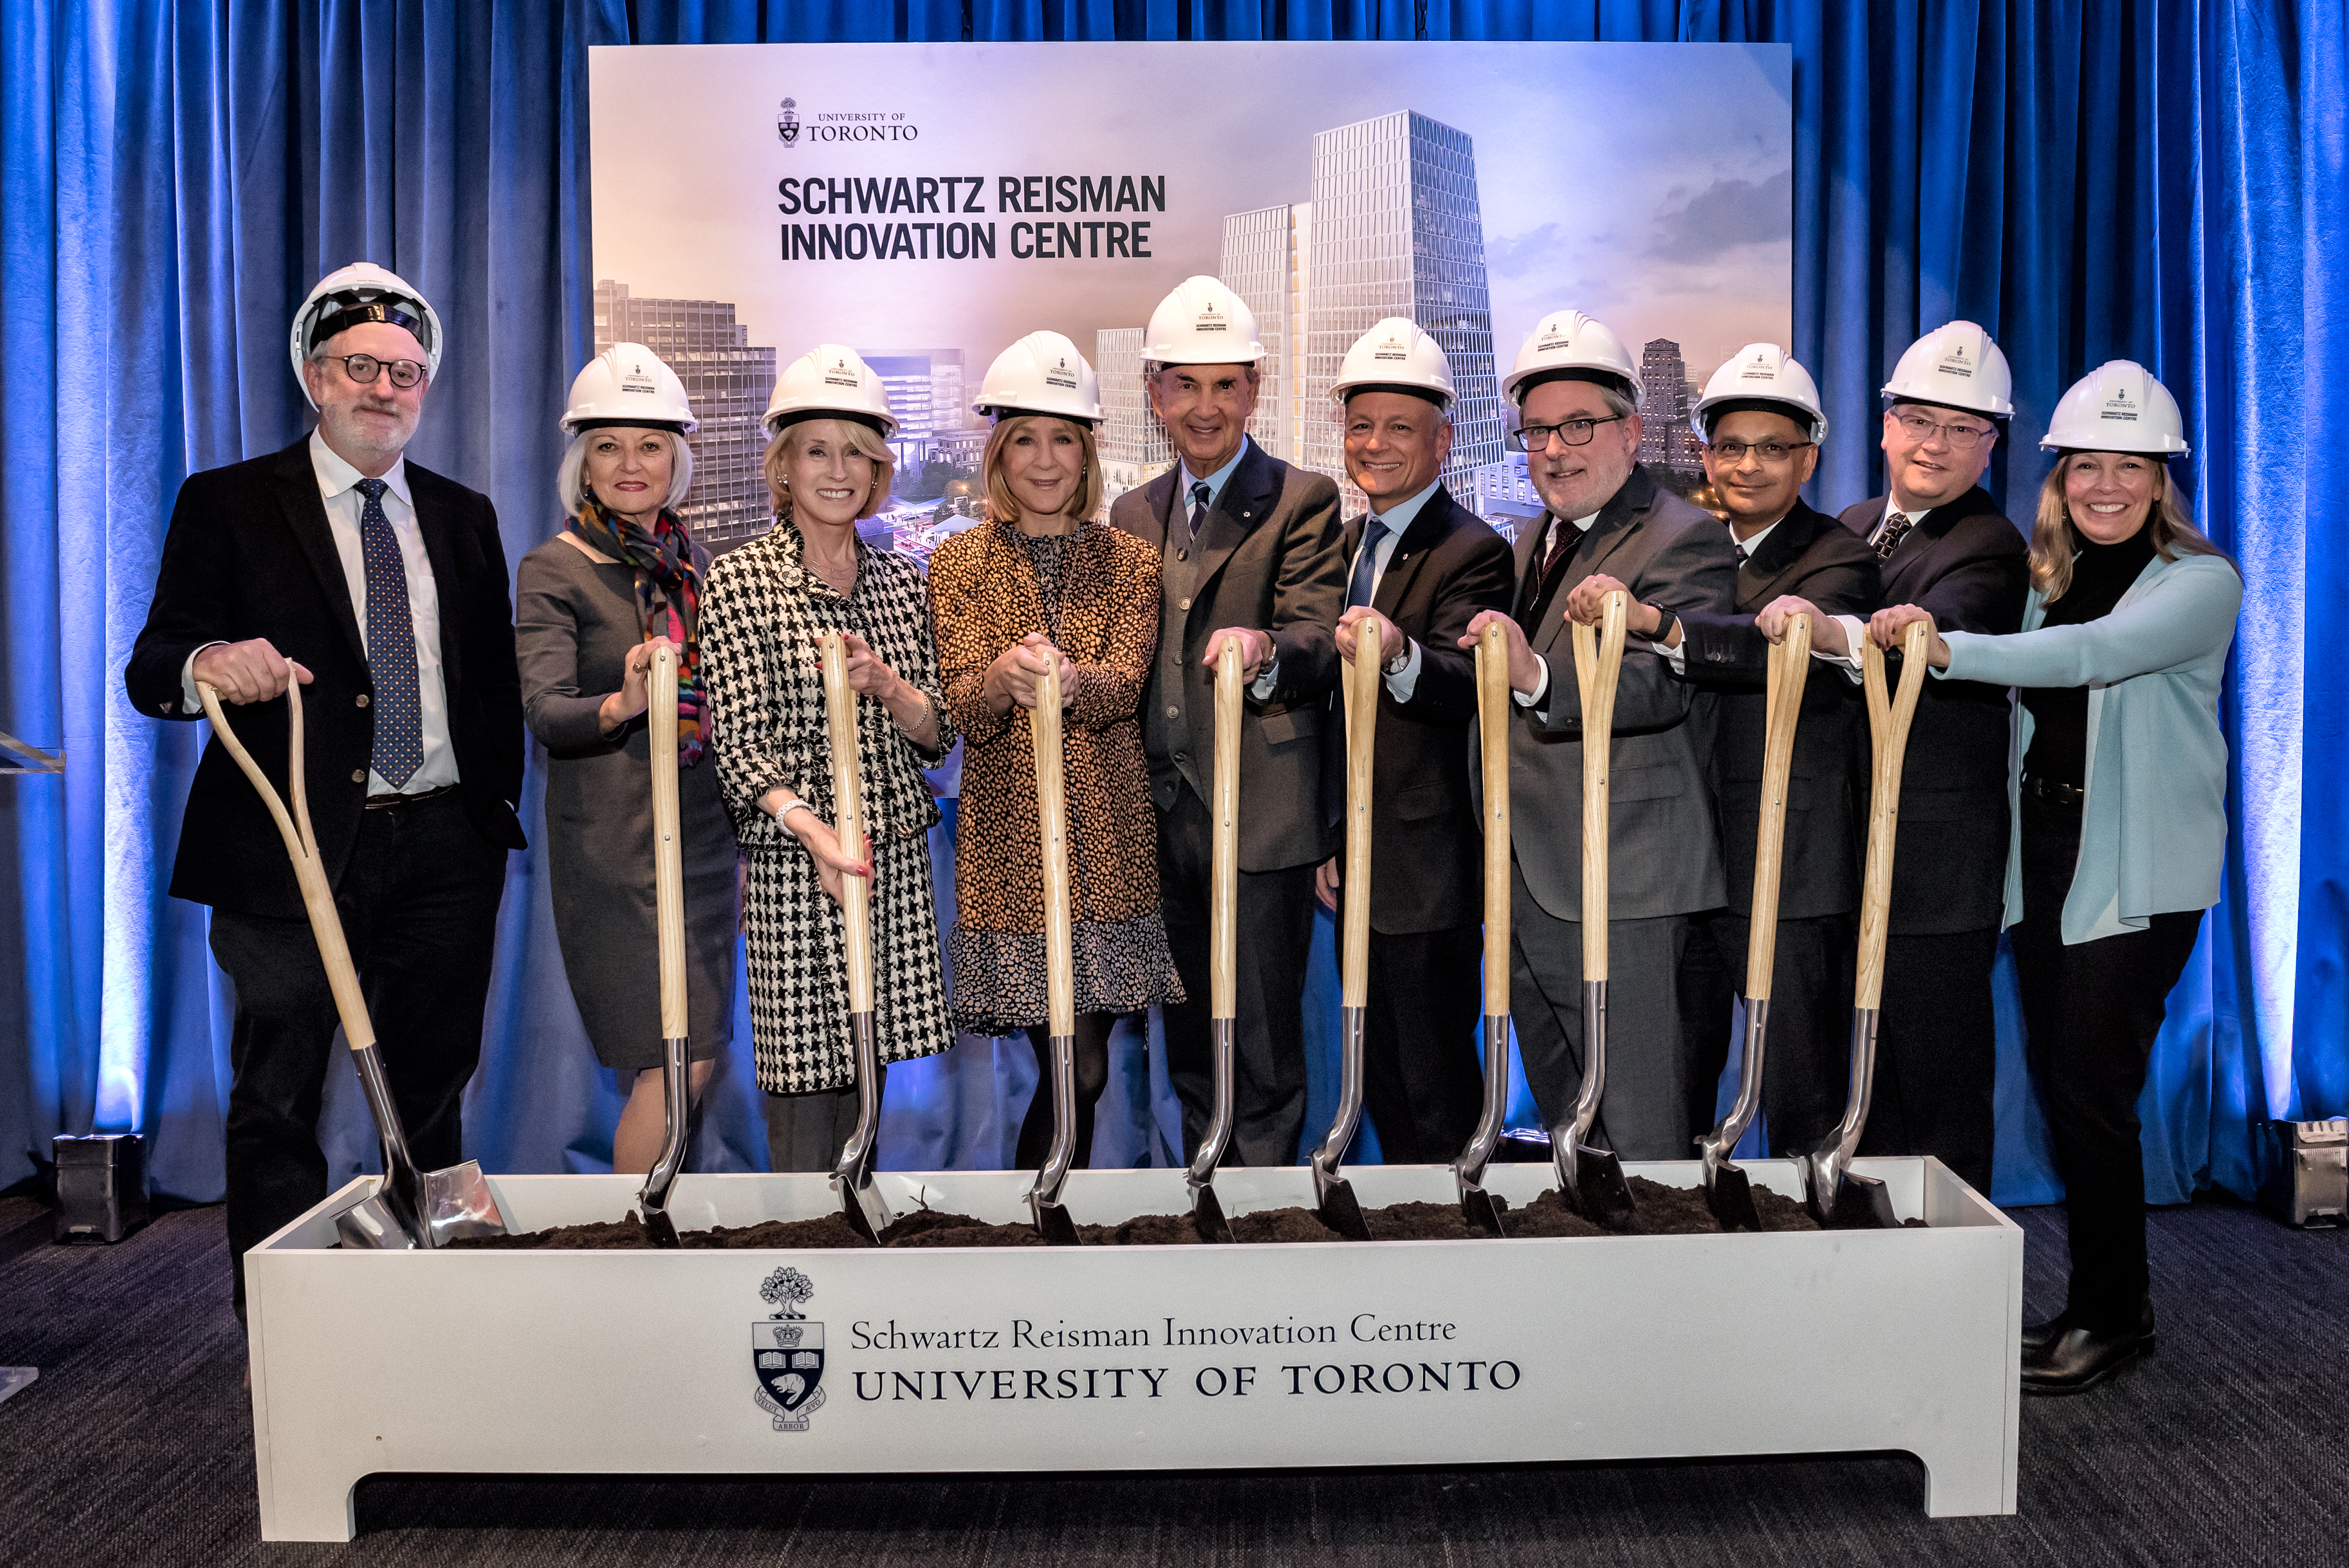 President Meric Gertler, Heather Reisman, Gerald Schwartz and others hold shovels at groundbreaking ceremony